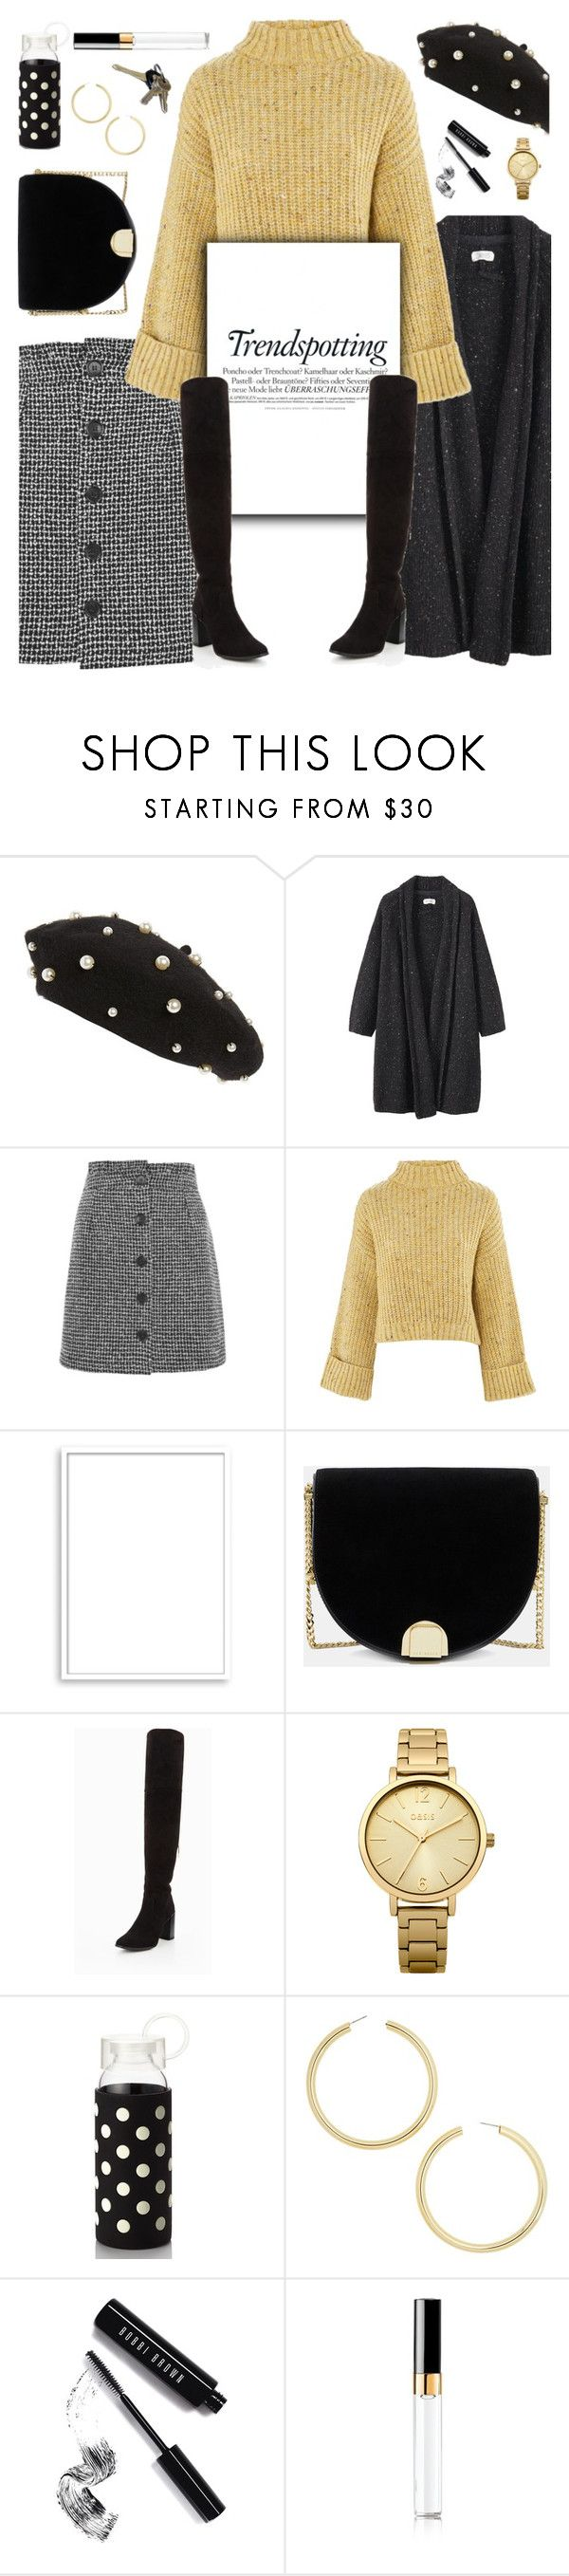 """""""Trendspotting: OTK Boots"""" by glamorous09 ❤ liked on Polyvore featuring Topshop, Toast, Bomedo, Melissa, Ted Baker, Avon, Oasis, Kate Spade, BaubleBar and Bobbi Brown Cosmetics"""